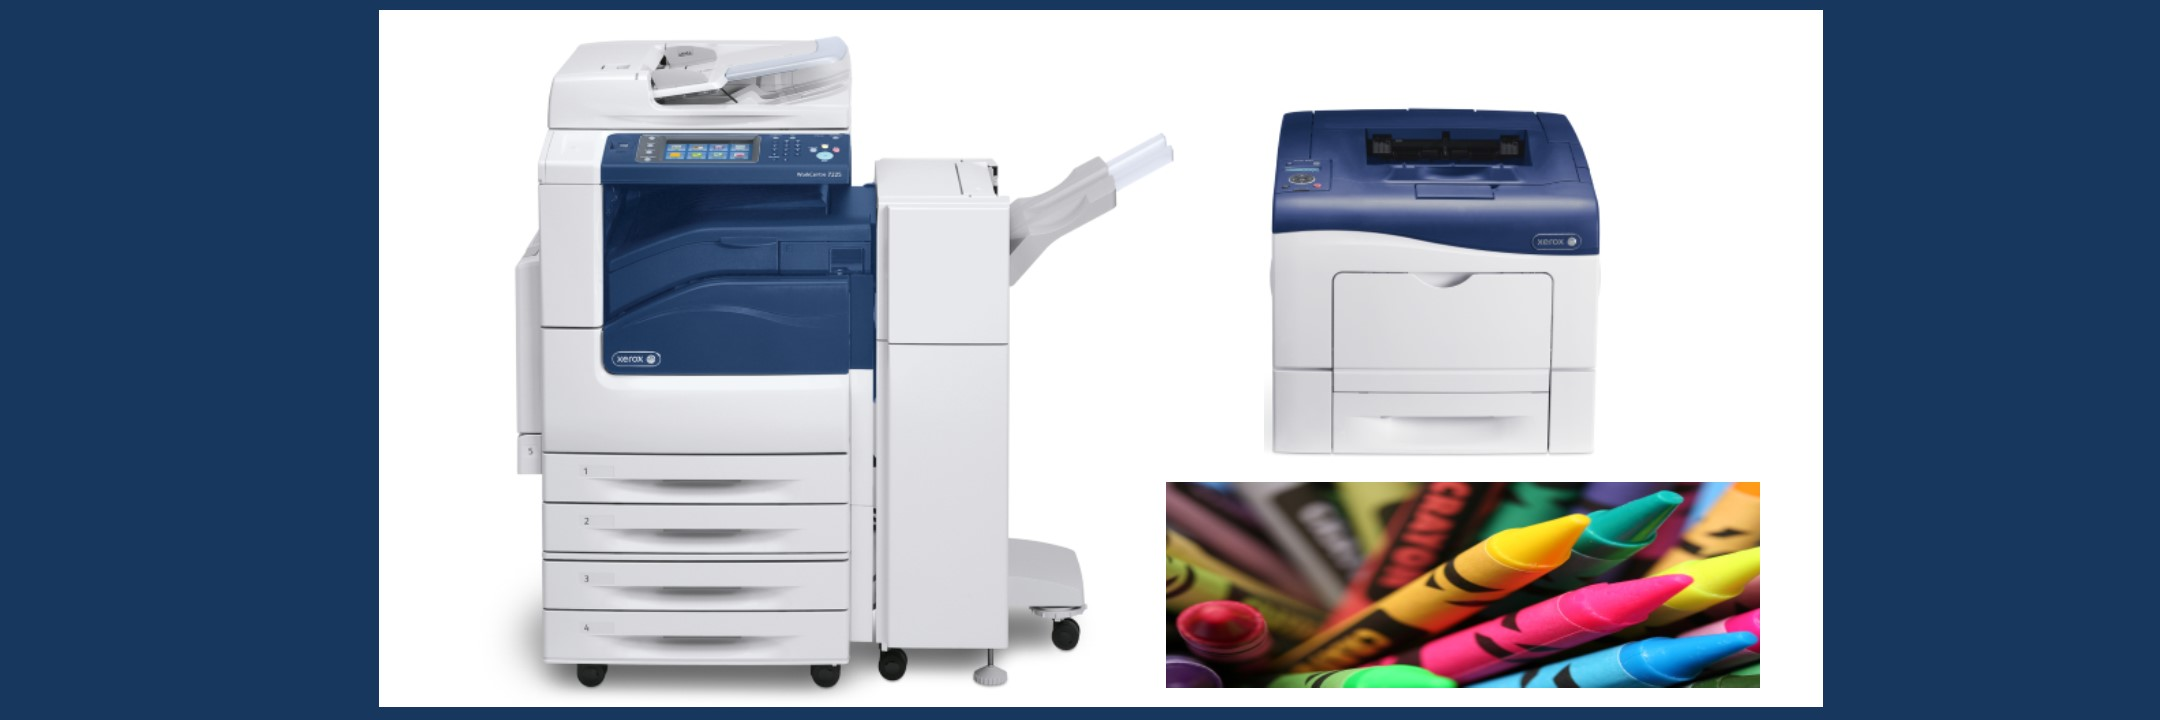 Printers with a sample printed colored crayon picture